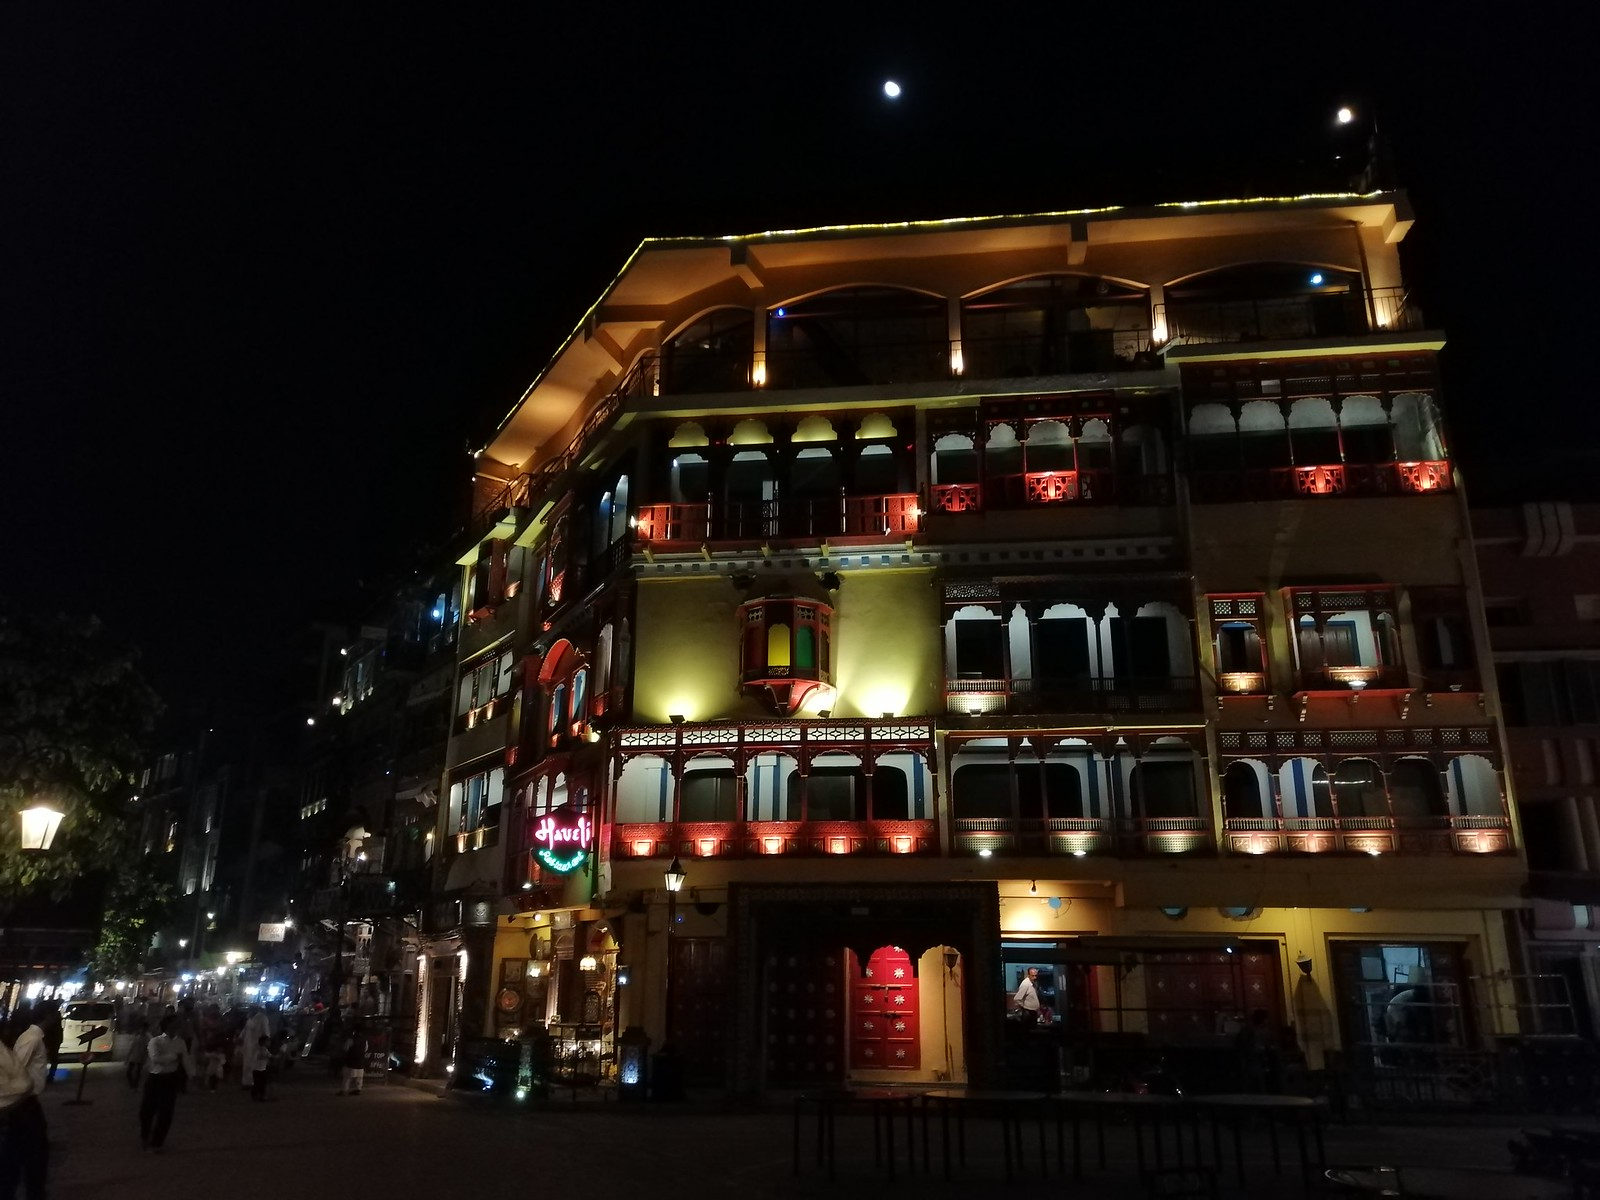 Building Picture with Auto Mode on Huawei Nova 3i